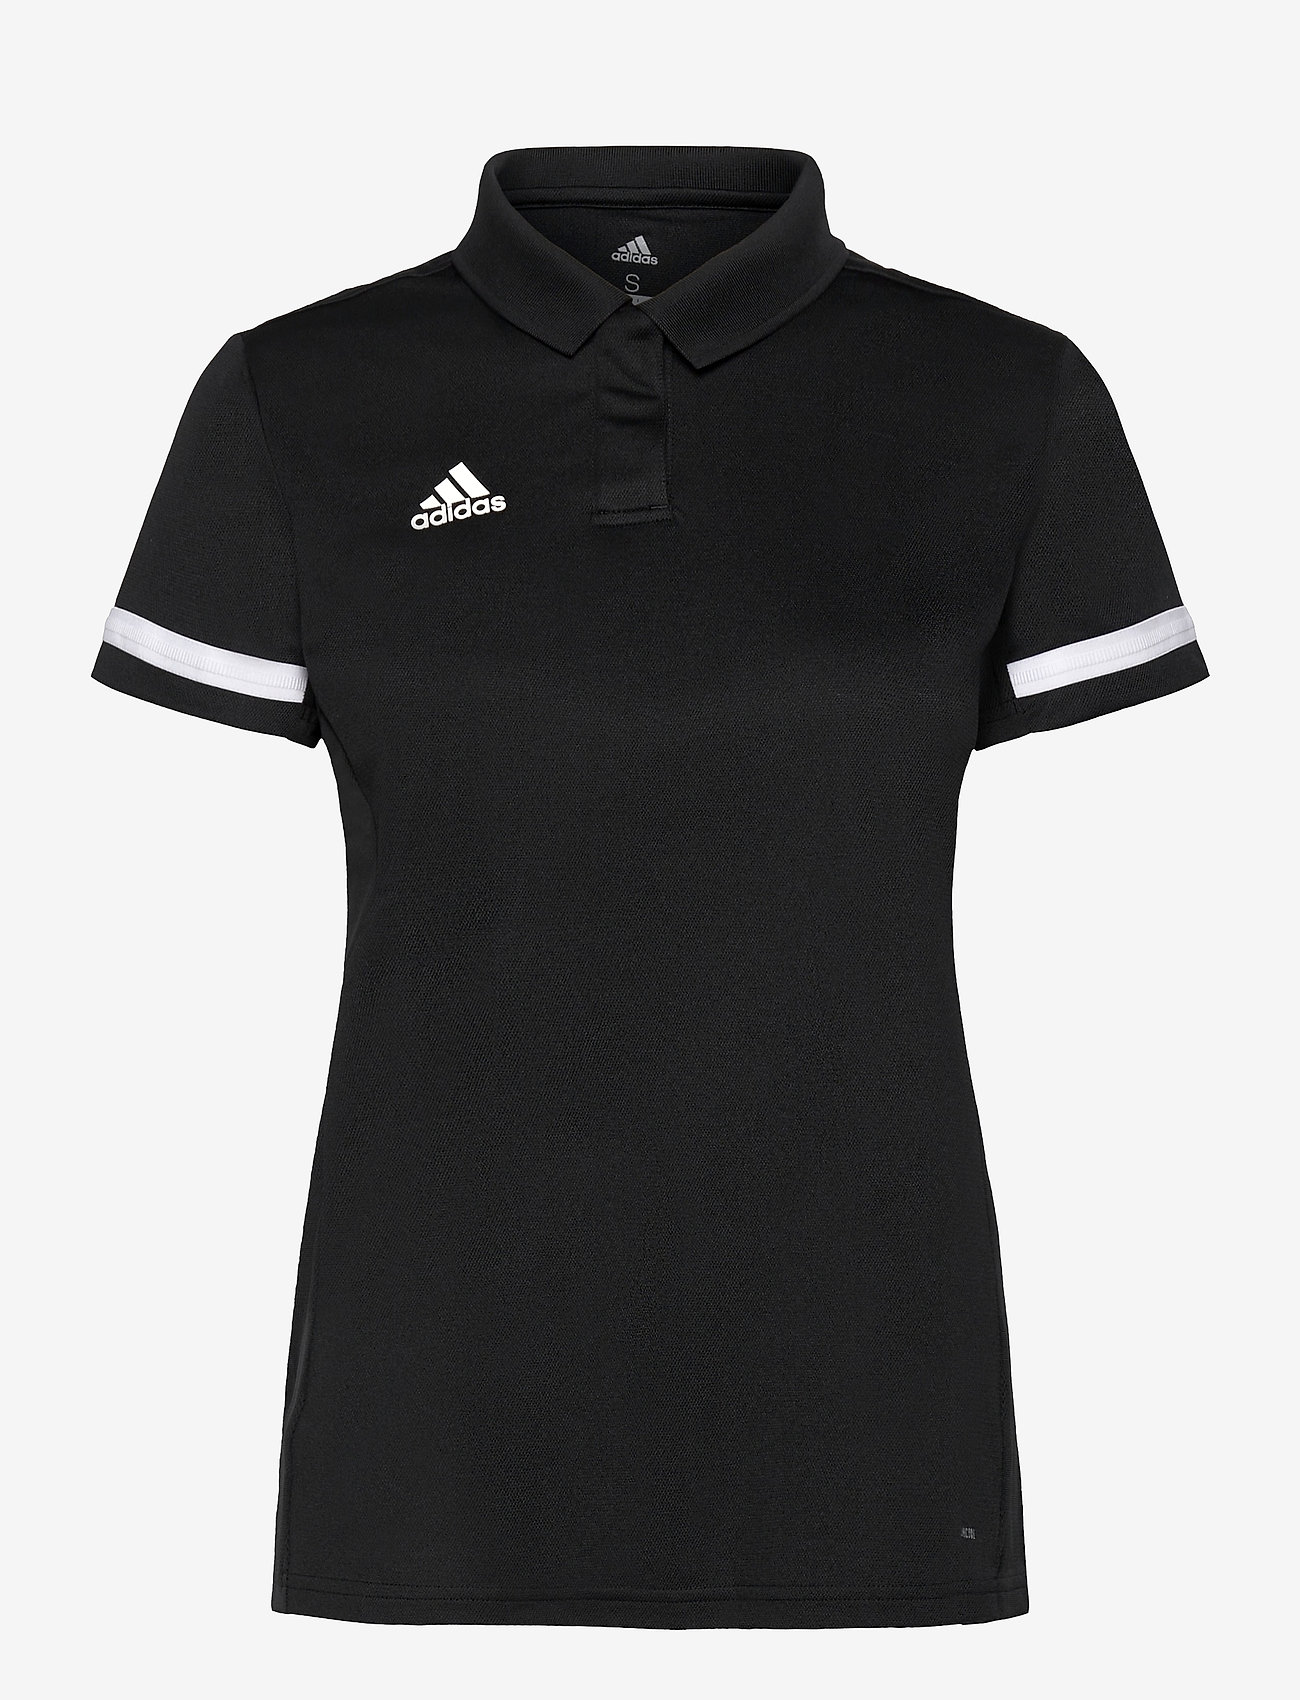 adidas Performance - Team 19 Polo Shirt W - voetbalshirts - black/white - 0